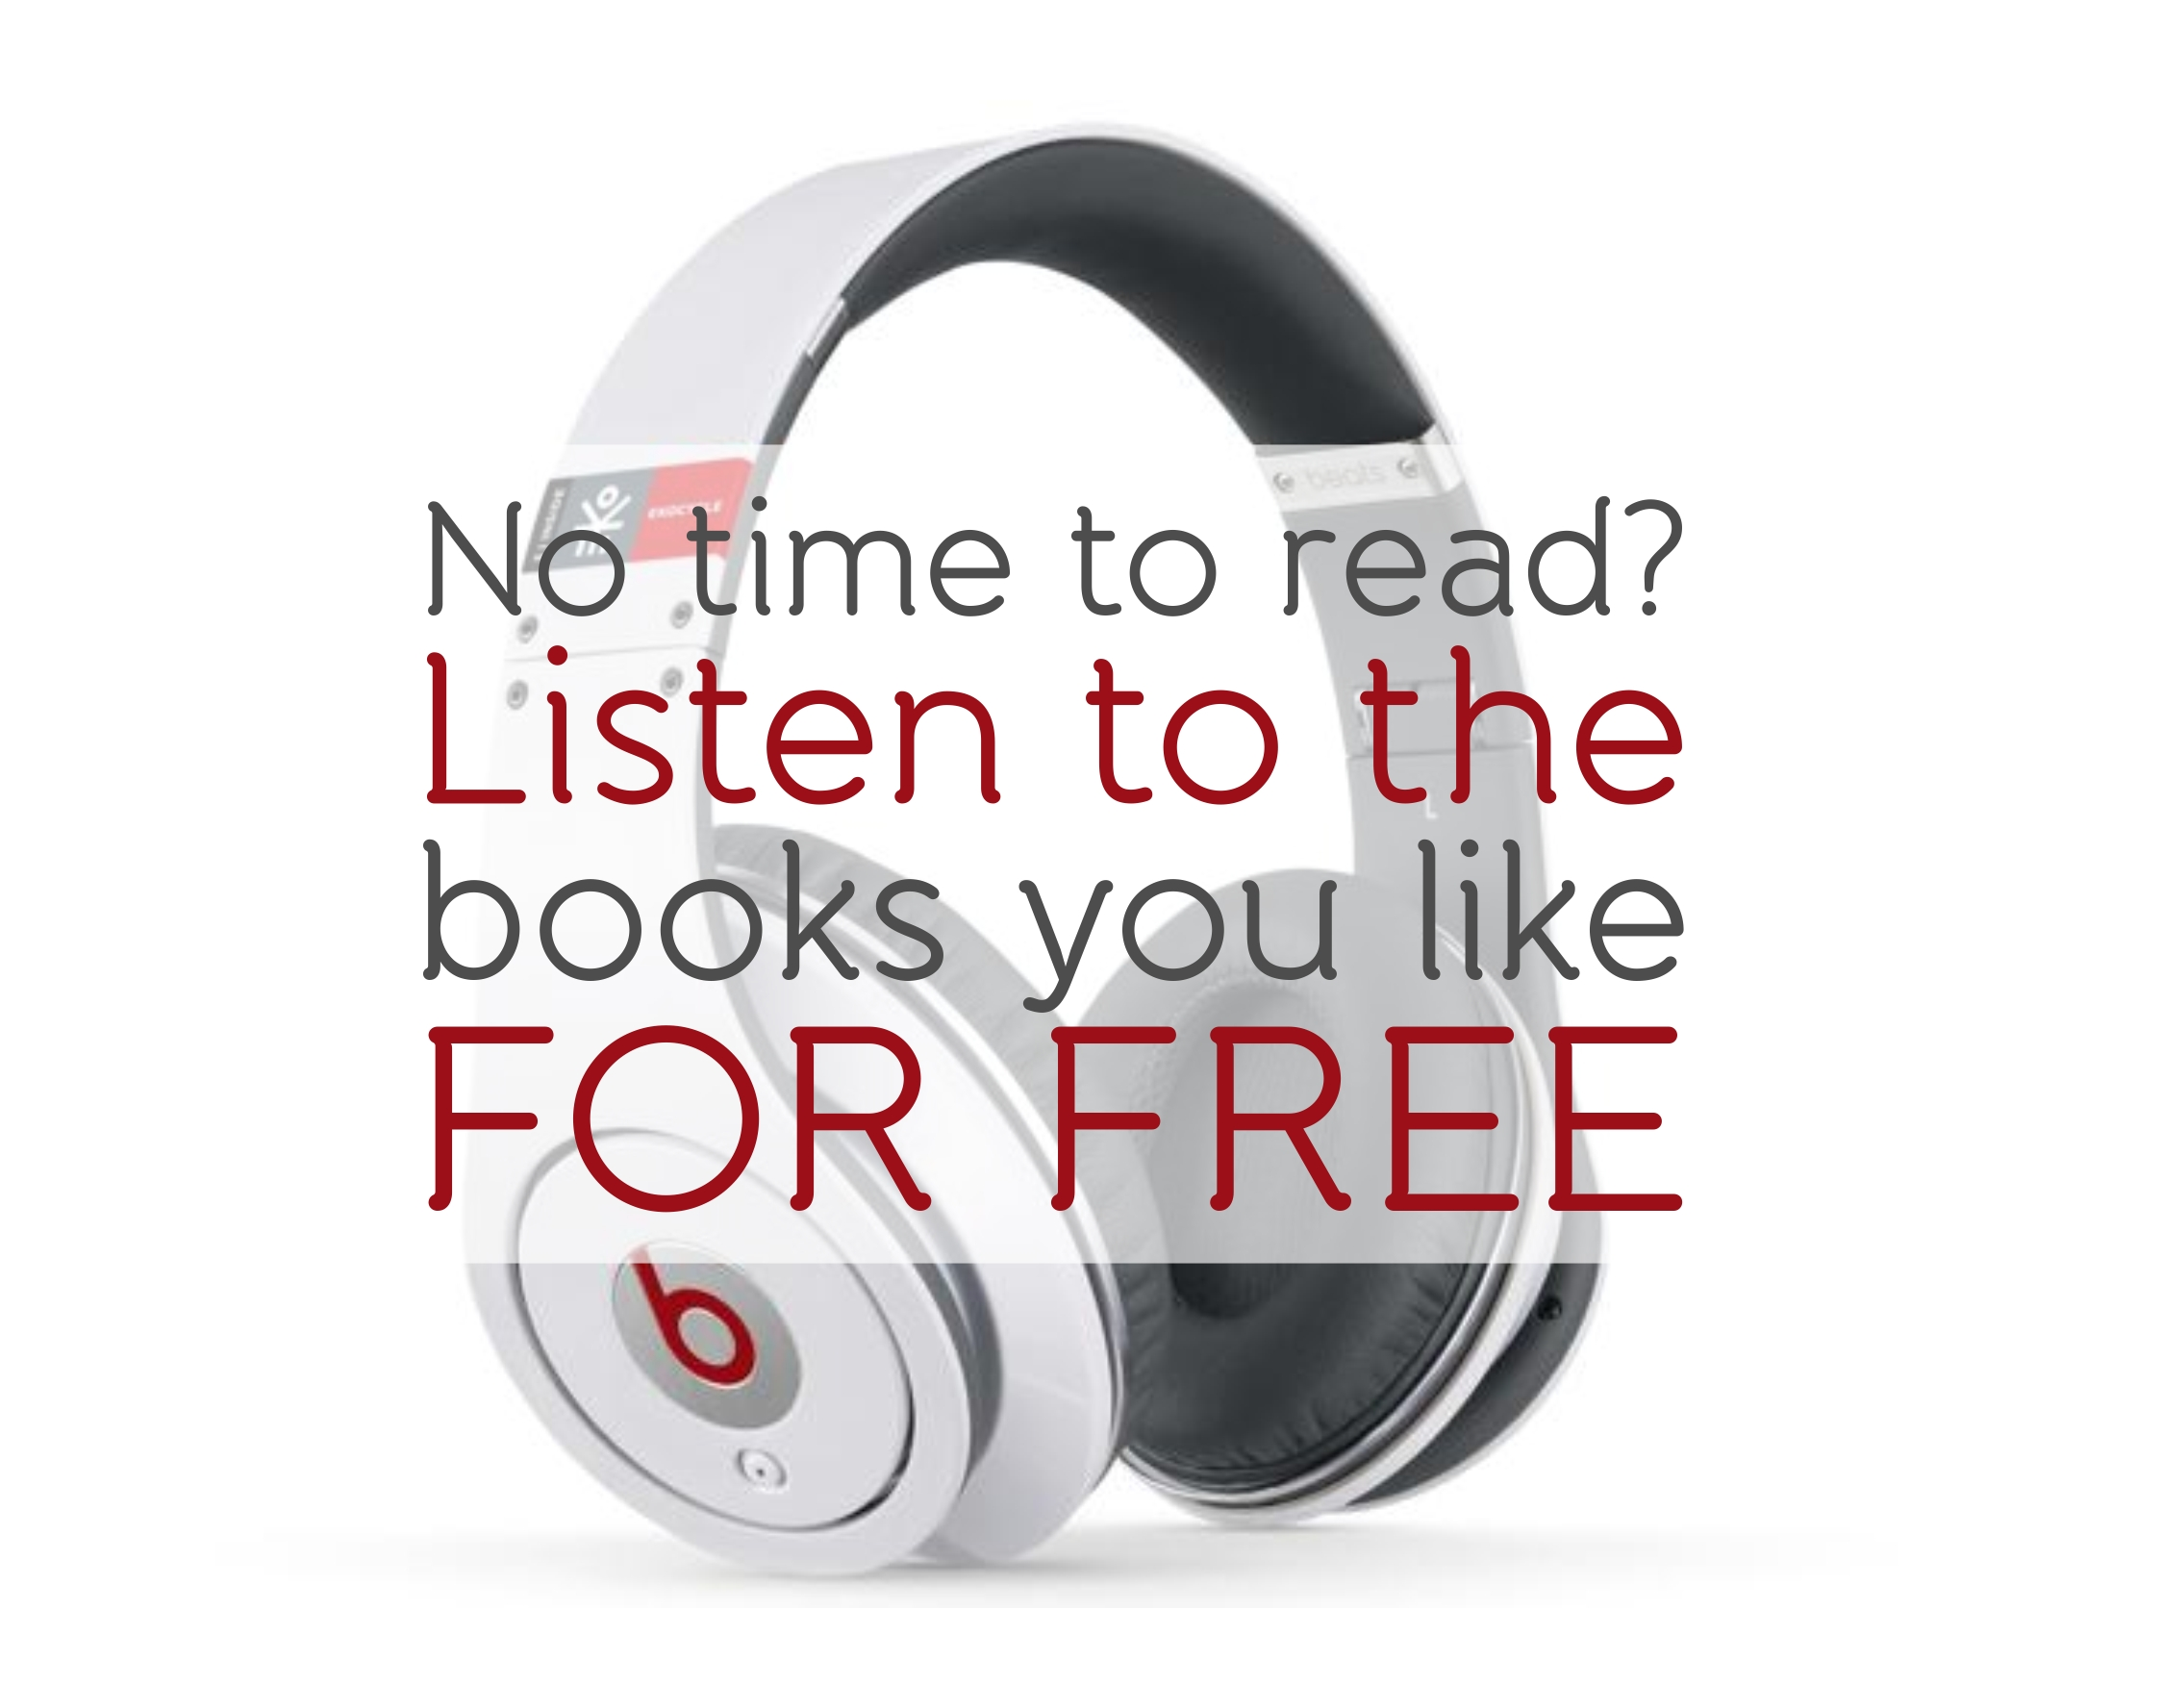 20 book sites audio books download free - Key Words For Cover Letters